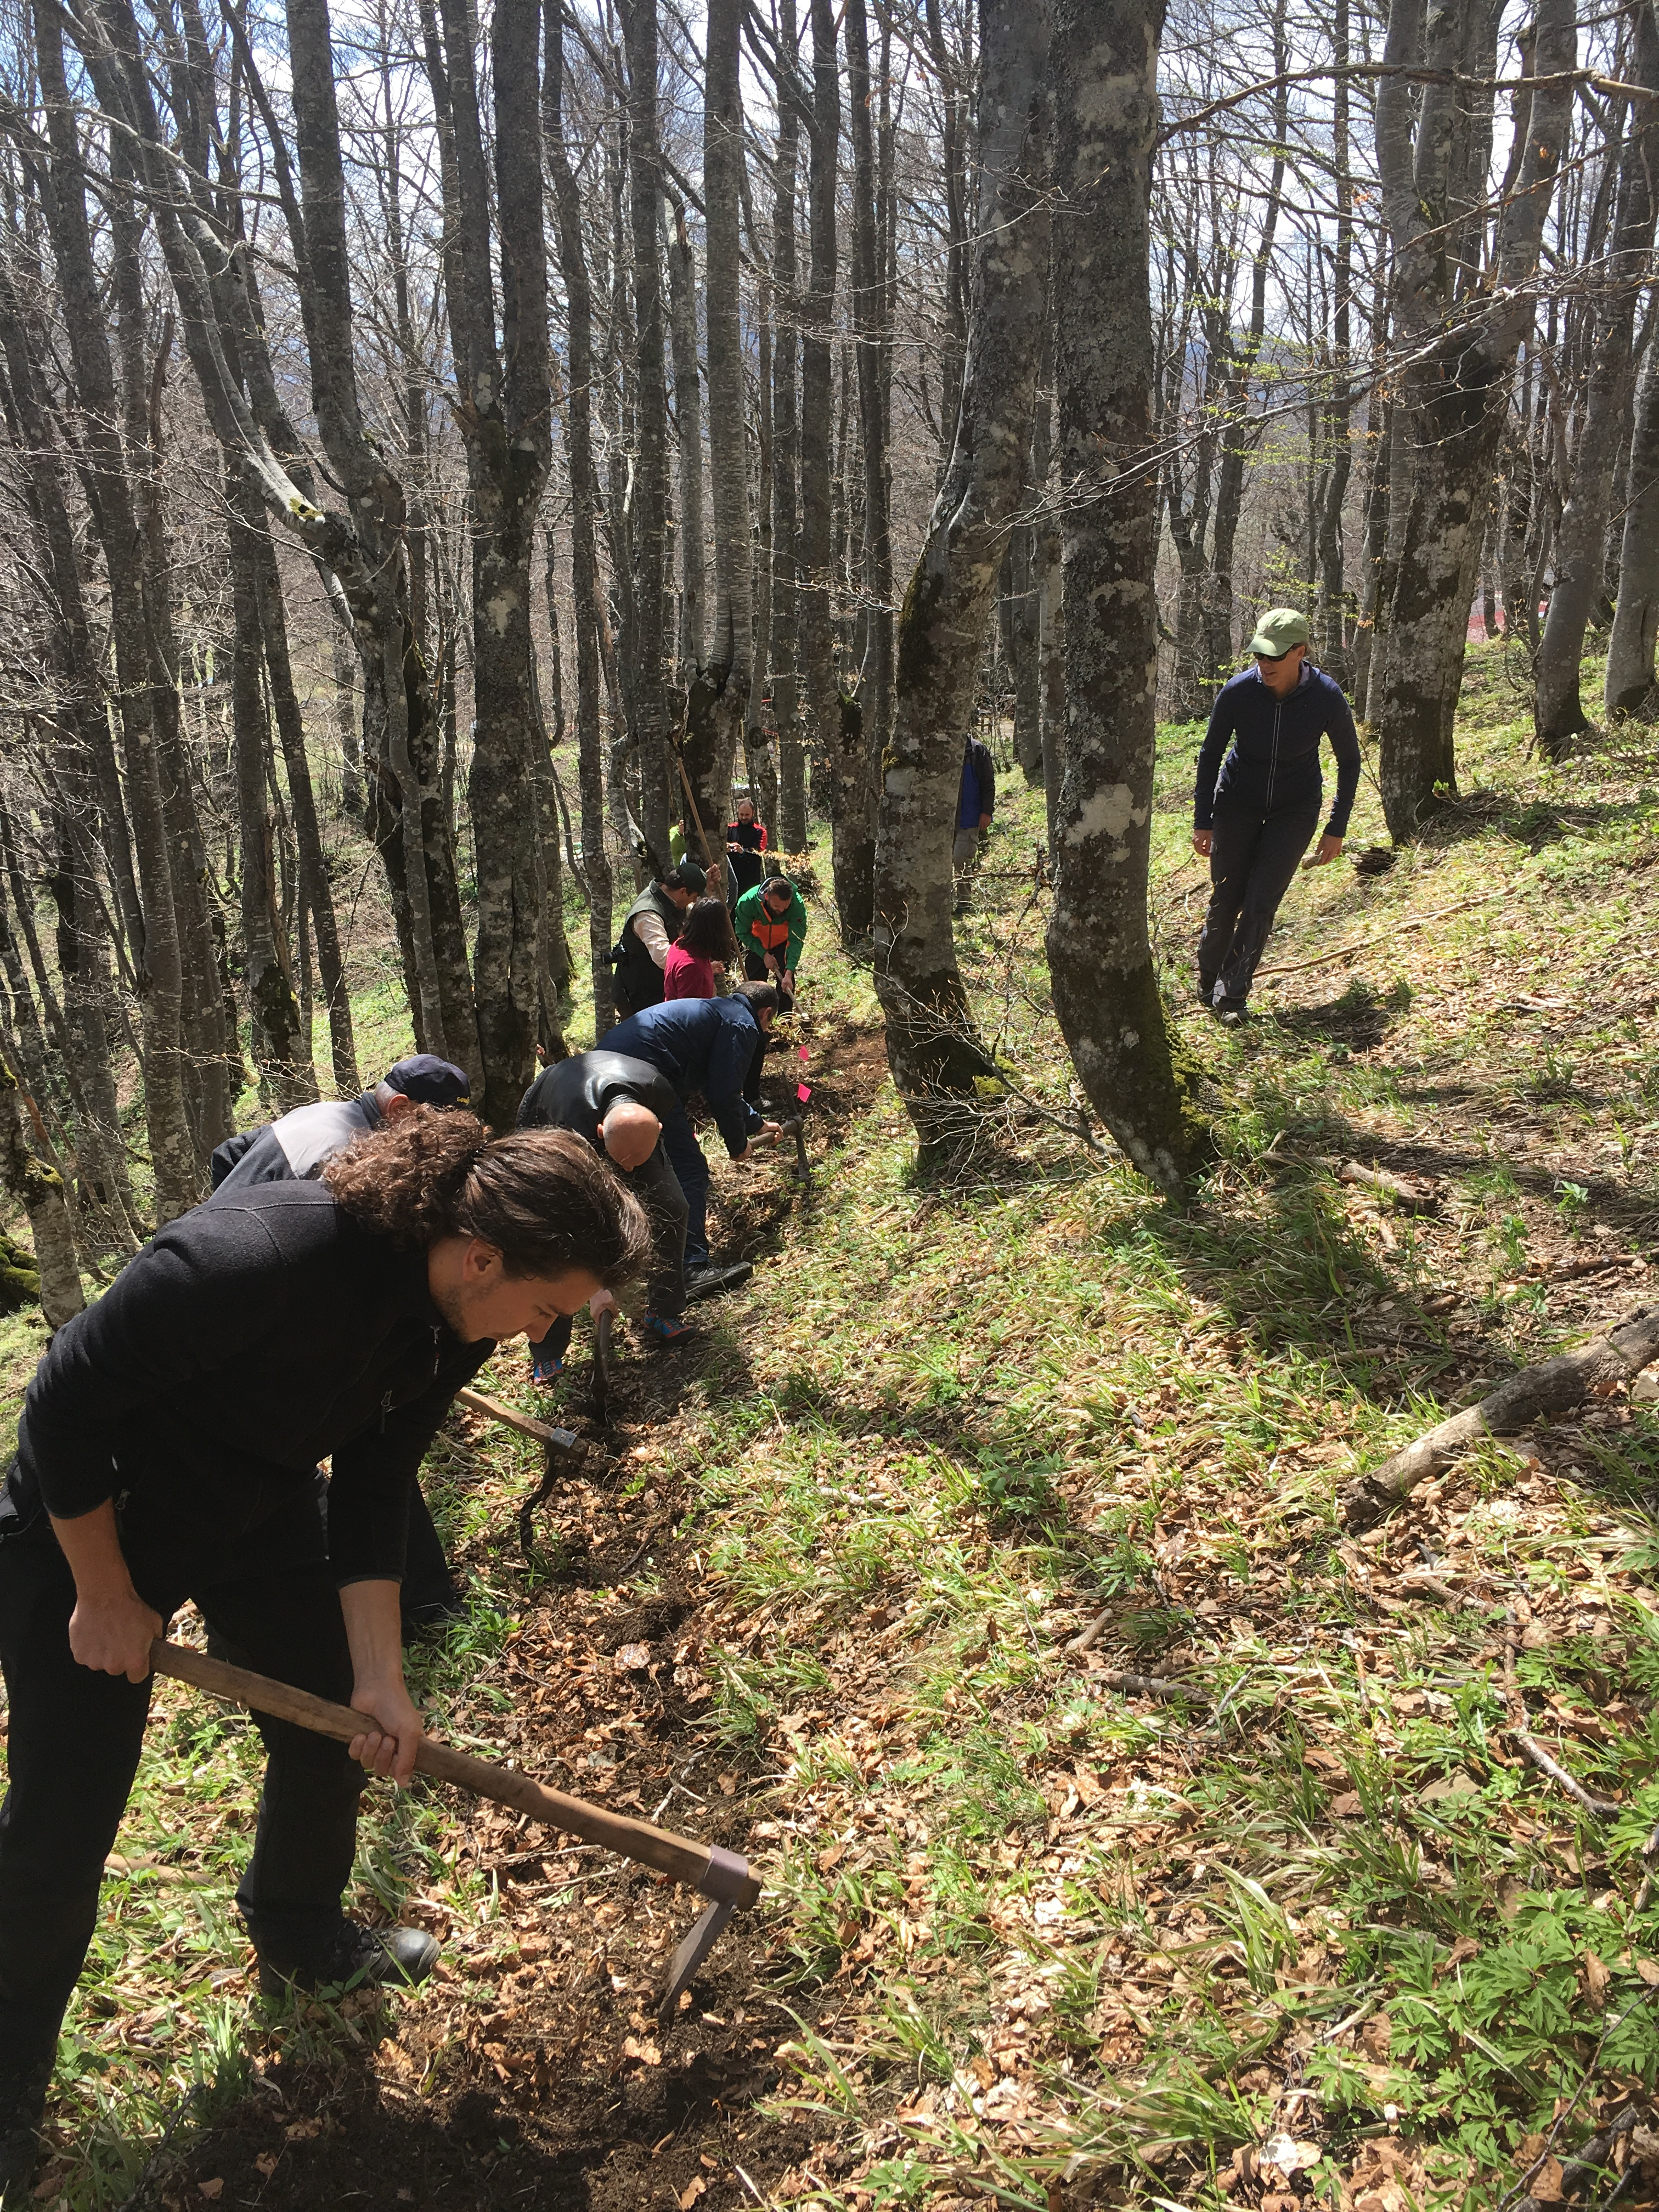 Volunteers and staff from Terra Dinarica and various partner organizations got some hands-on practice during a workshop on trail design, construction and maintenance led by USFS specialists Cindy Ebbert and Sam Massman.